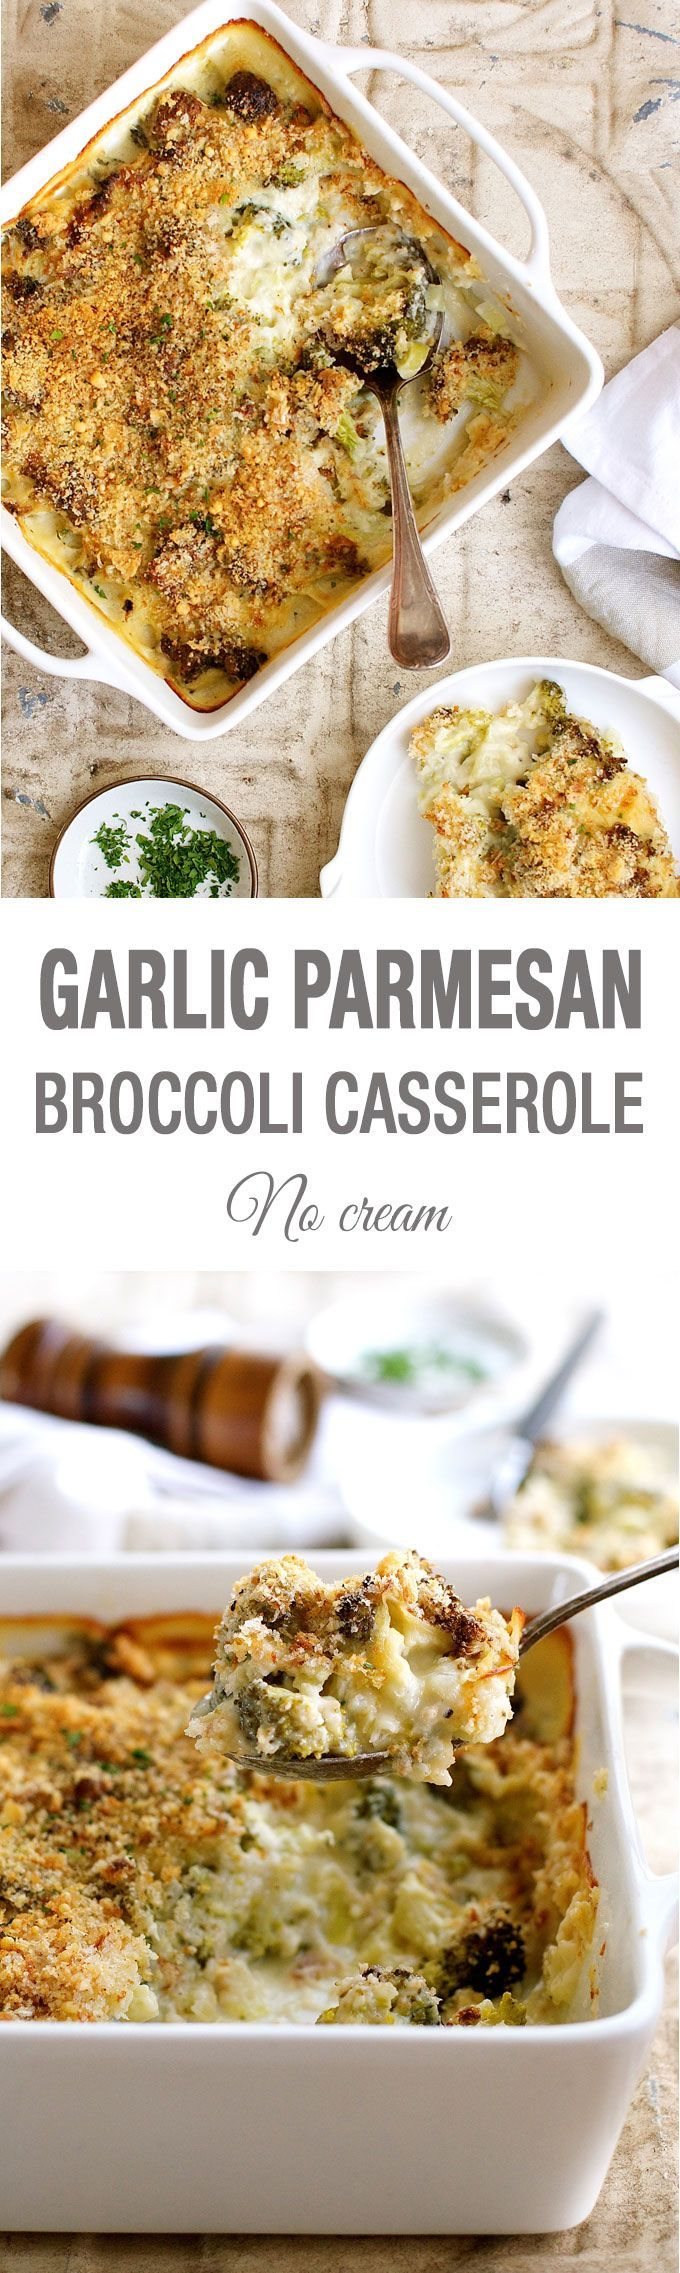 Creamy Broccoli Casserole (Gratin / Bake) - made from scratch without a drop of cream!